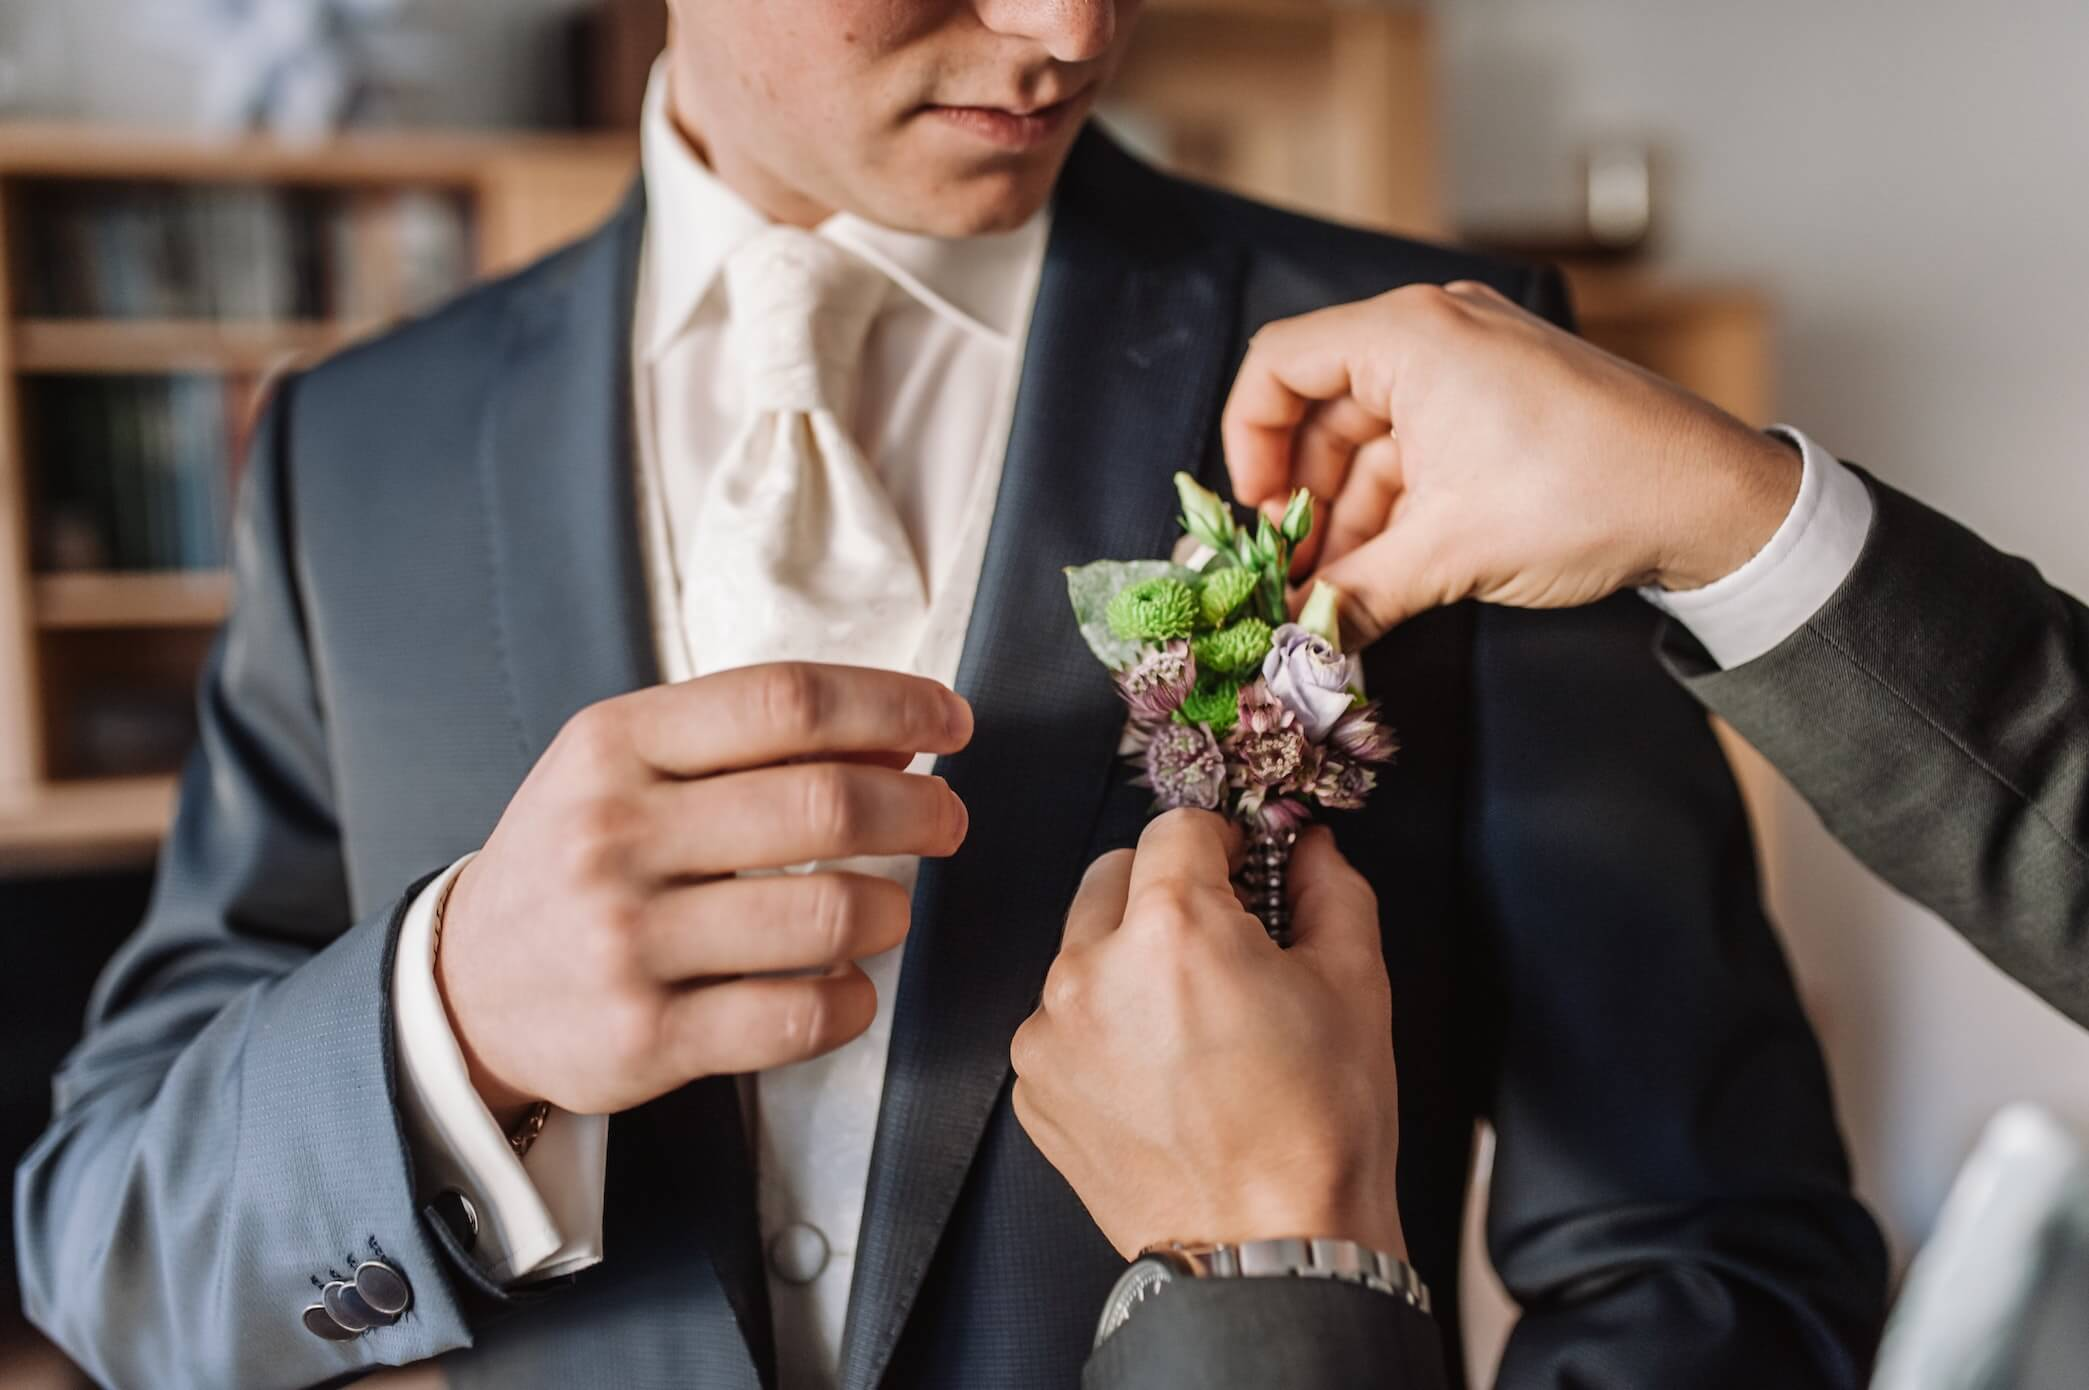 A groom has his boutonnière placed by his best man.